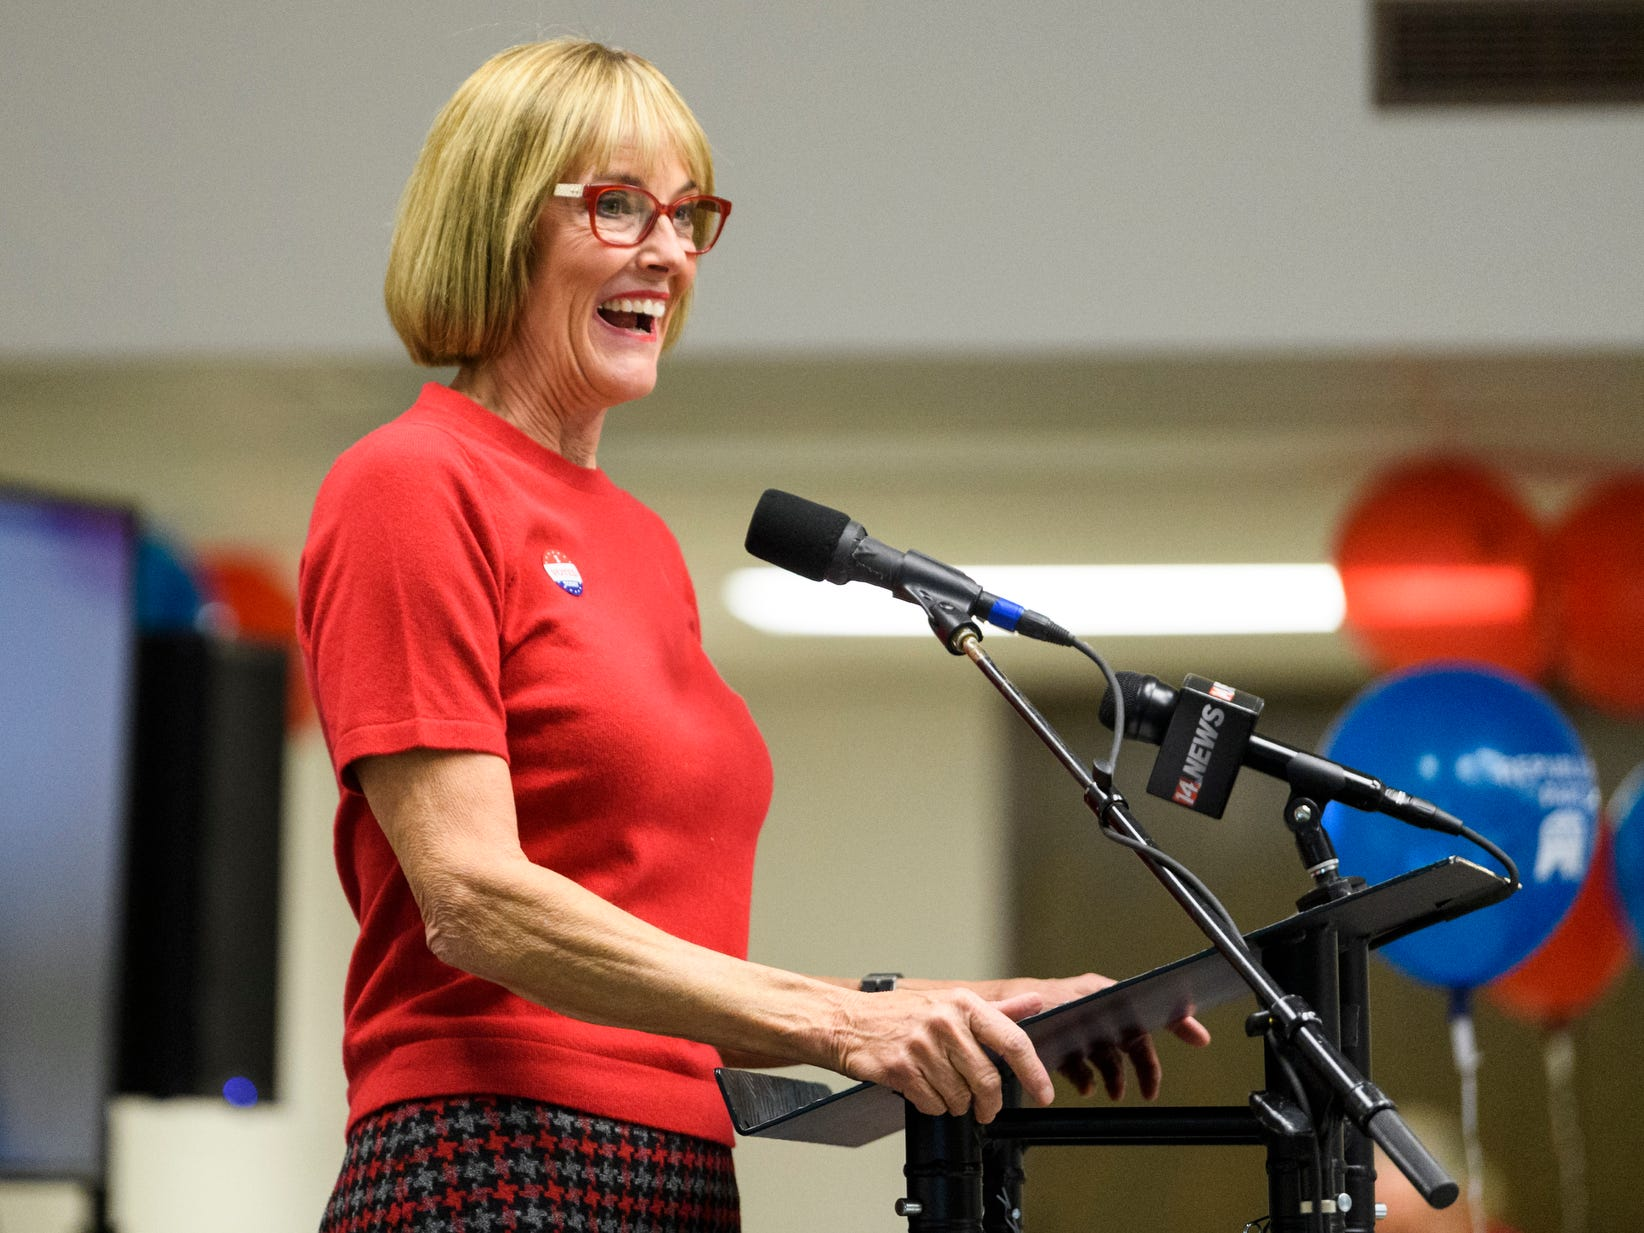 Lt. Governor Suzanne Crouch addresses the crowd during the Republican watch party at the C K Newsome Community Center in Evansville, Ind., Tuesday, Nov. 6, 2018.